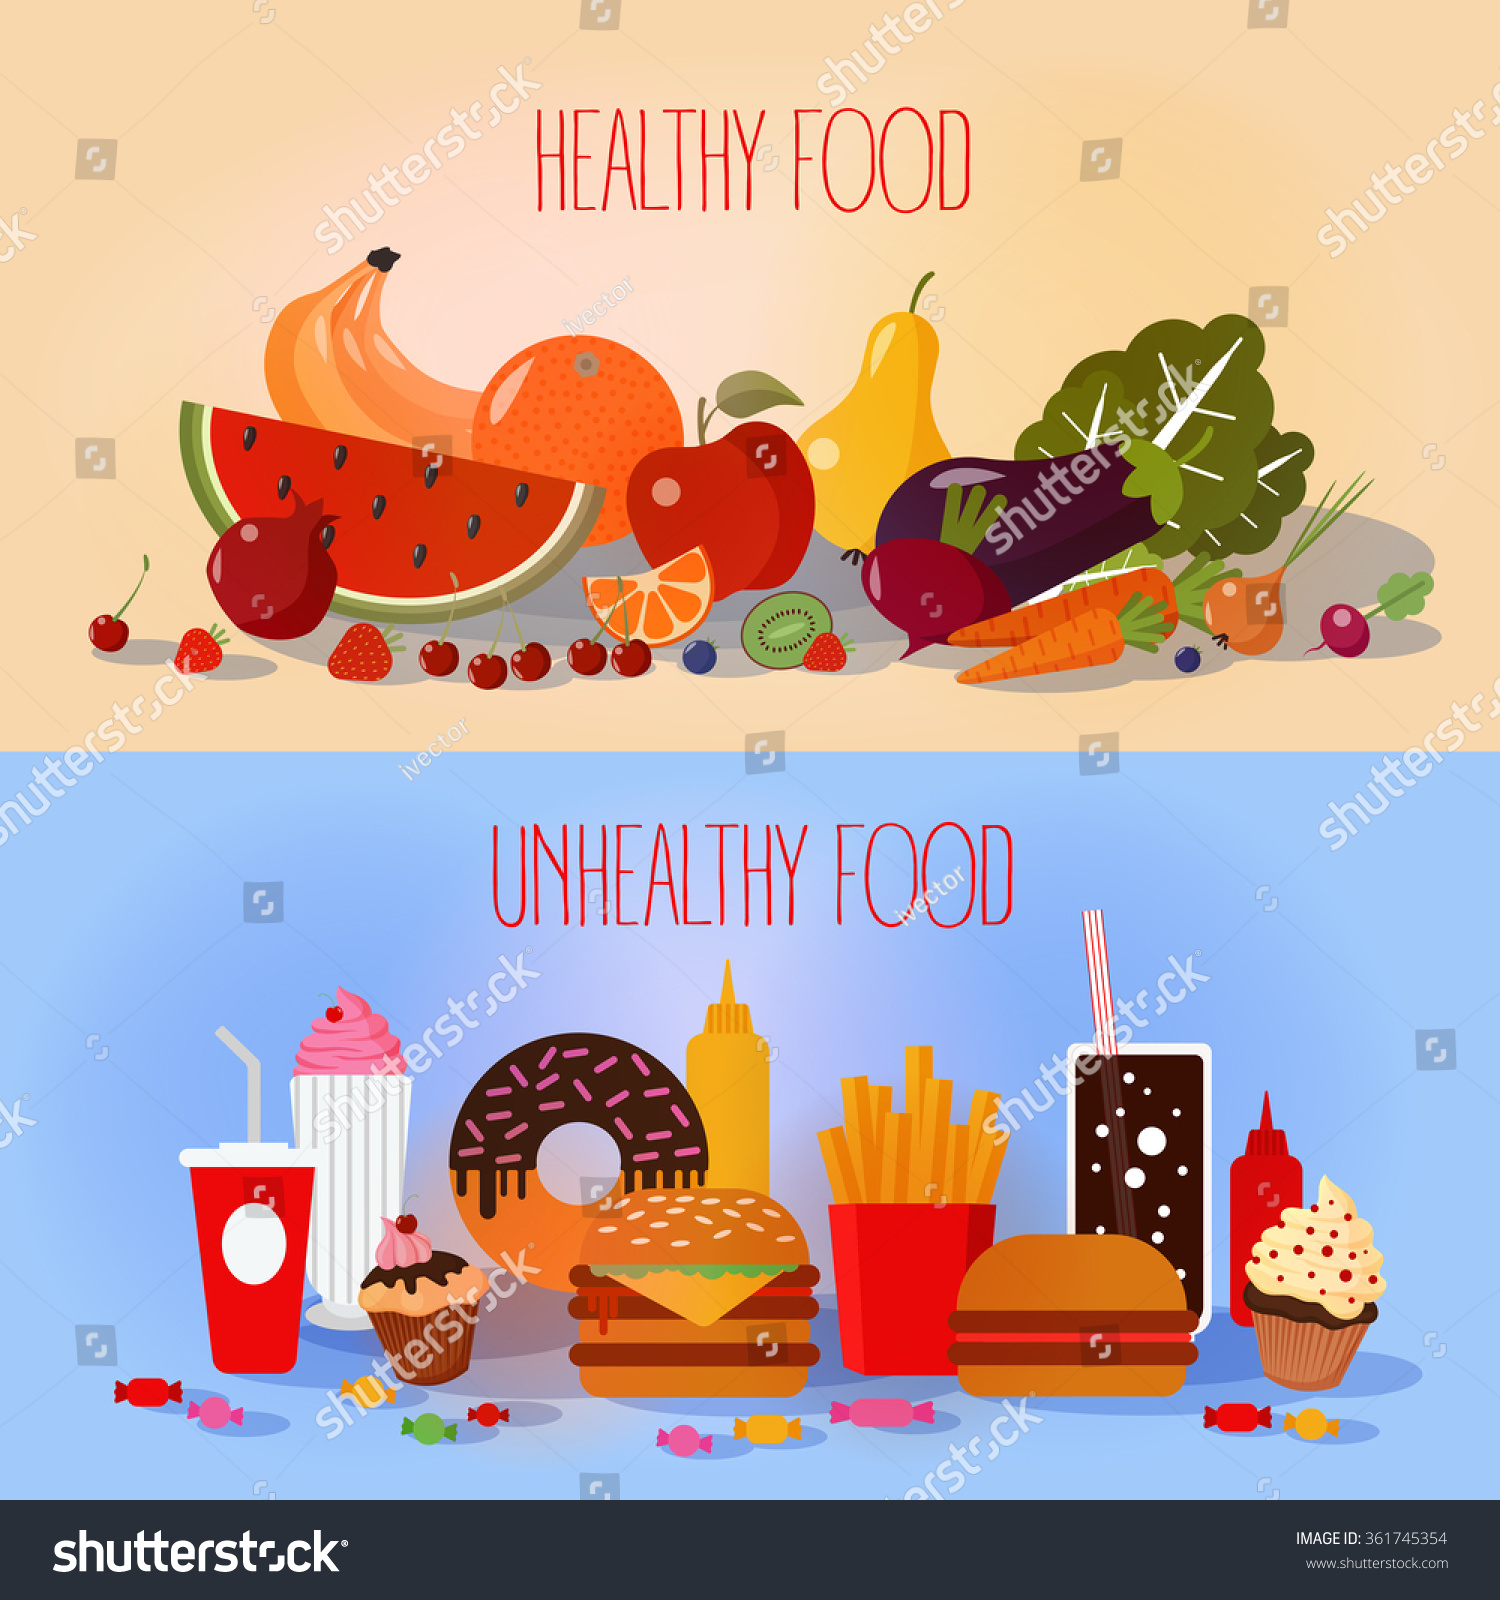 essay about healty food Free essays on junk food vs healthy food get help with your writing 1 through 30.